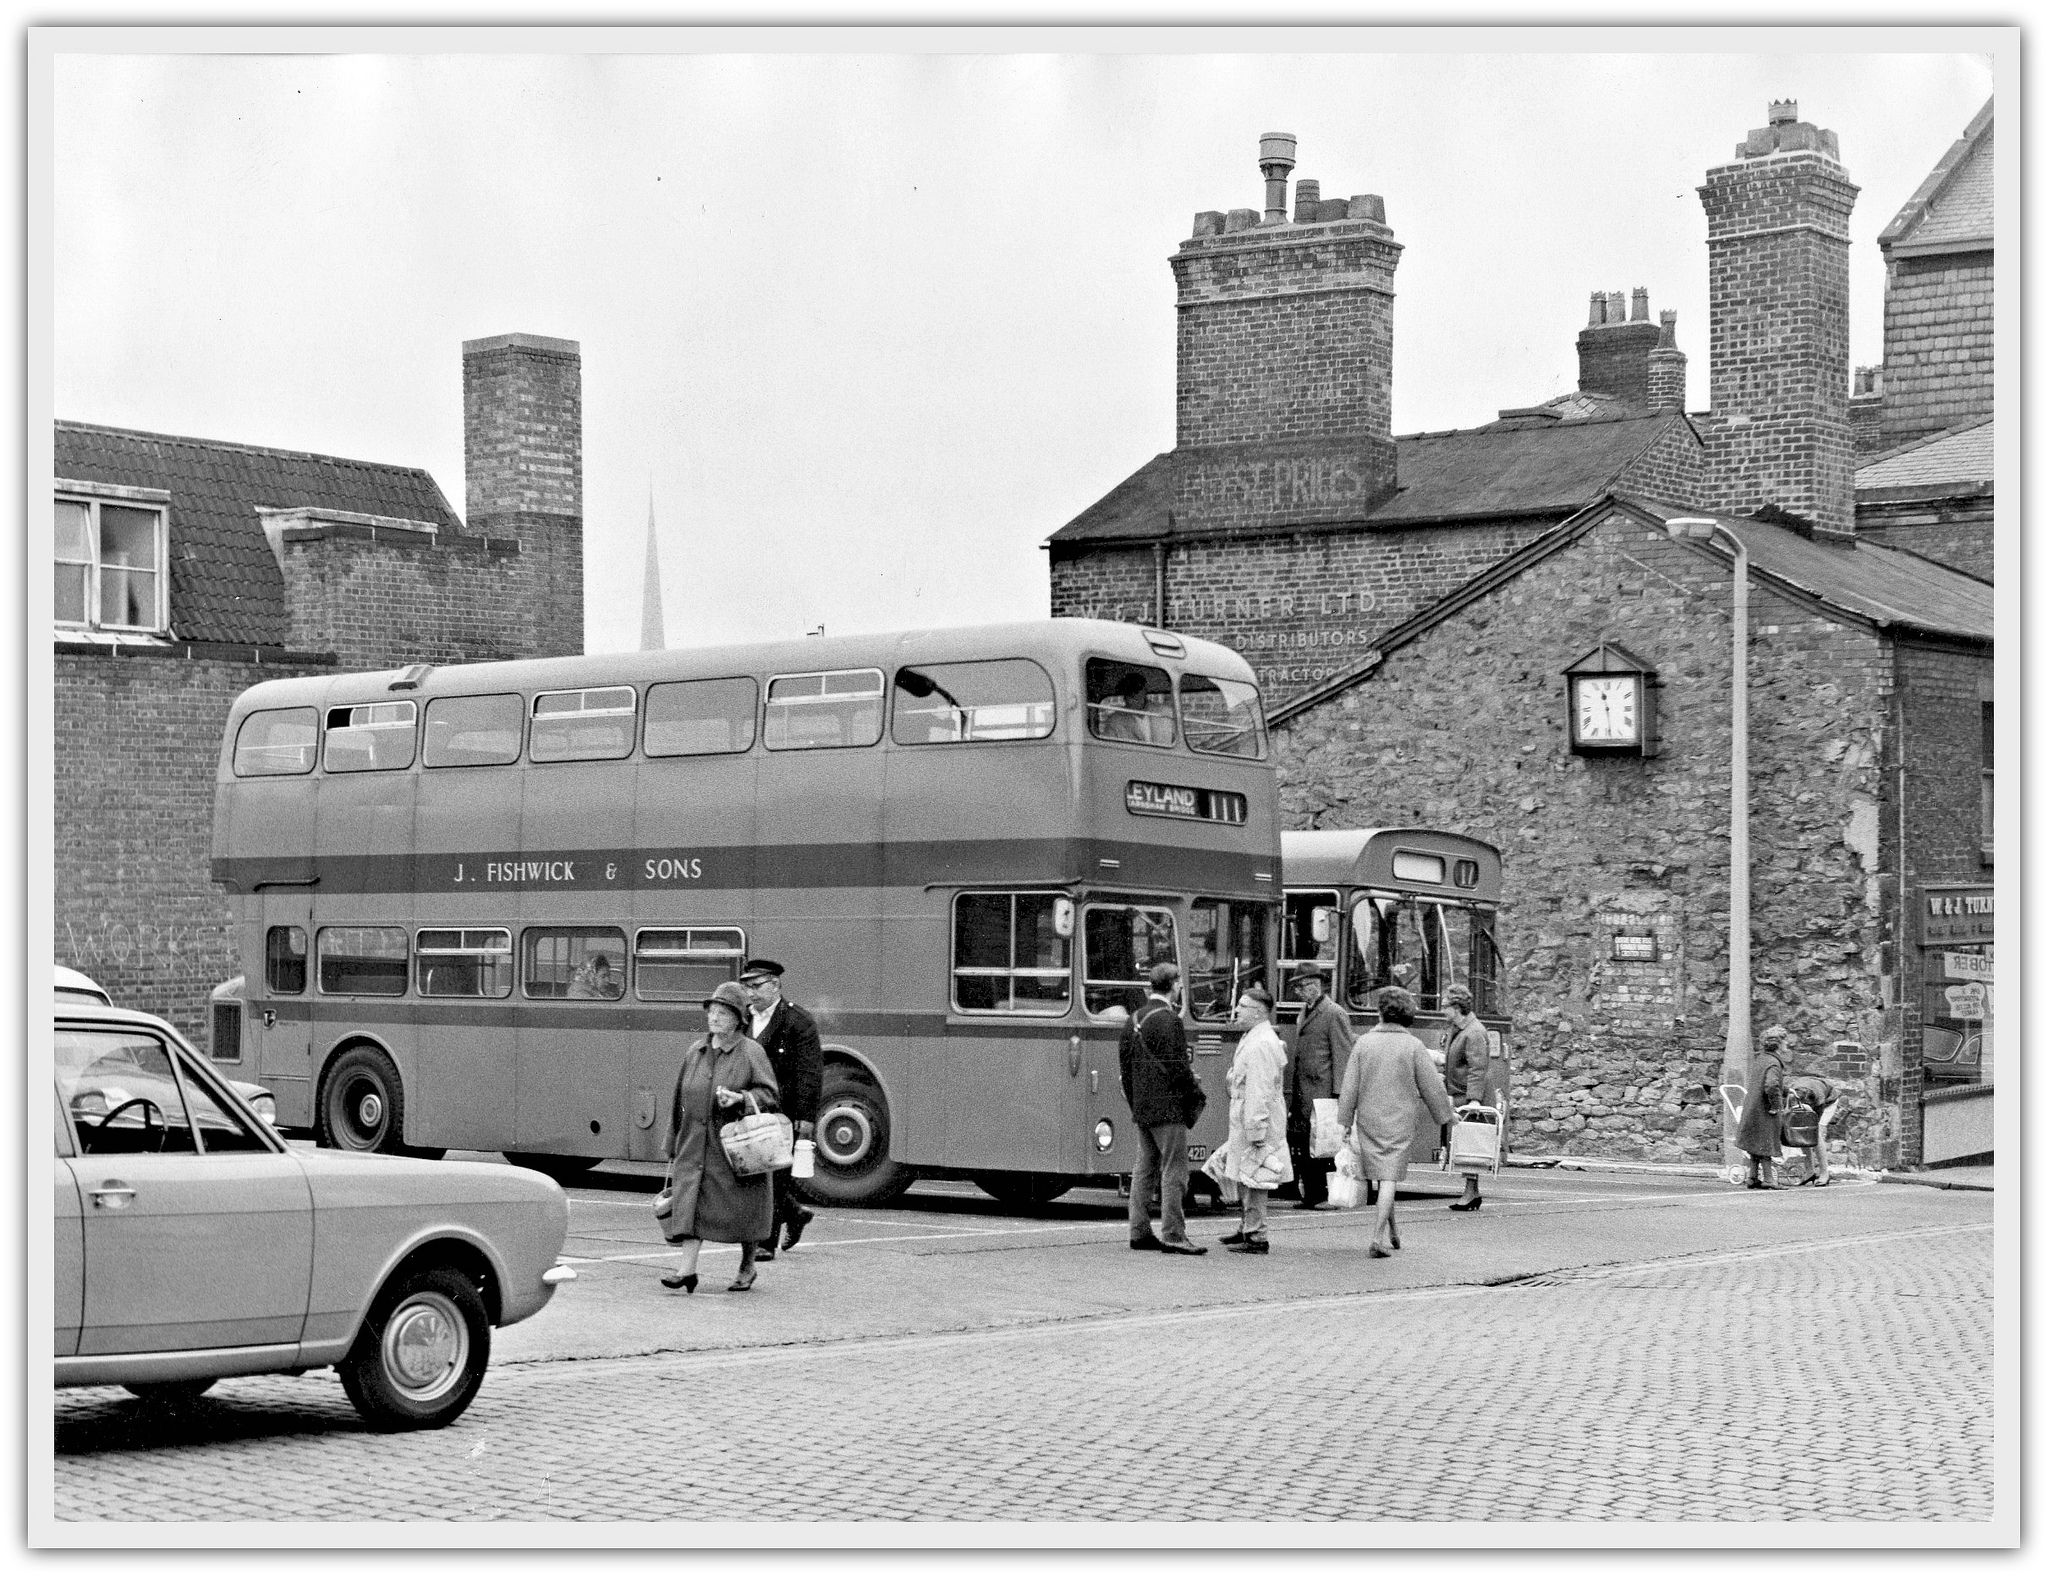 Fishwick Bus Station, Fox Street, Preston c.1968